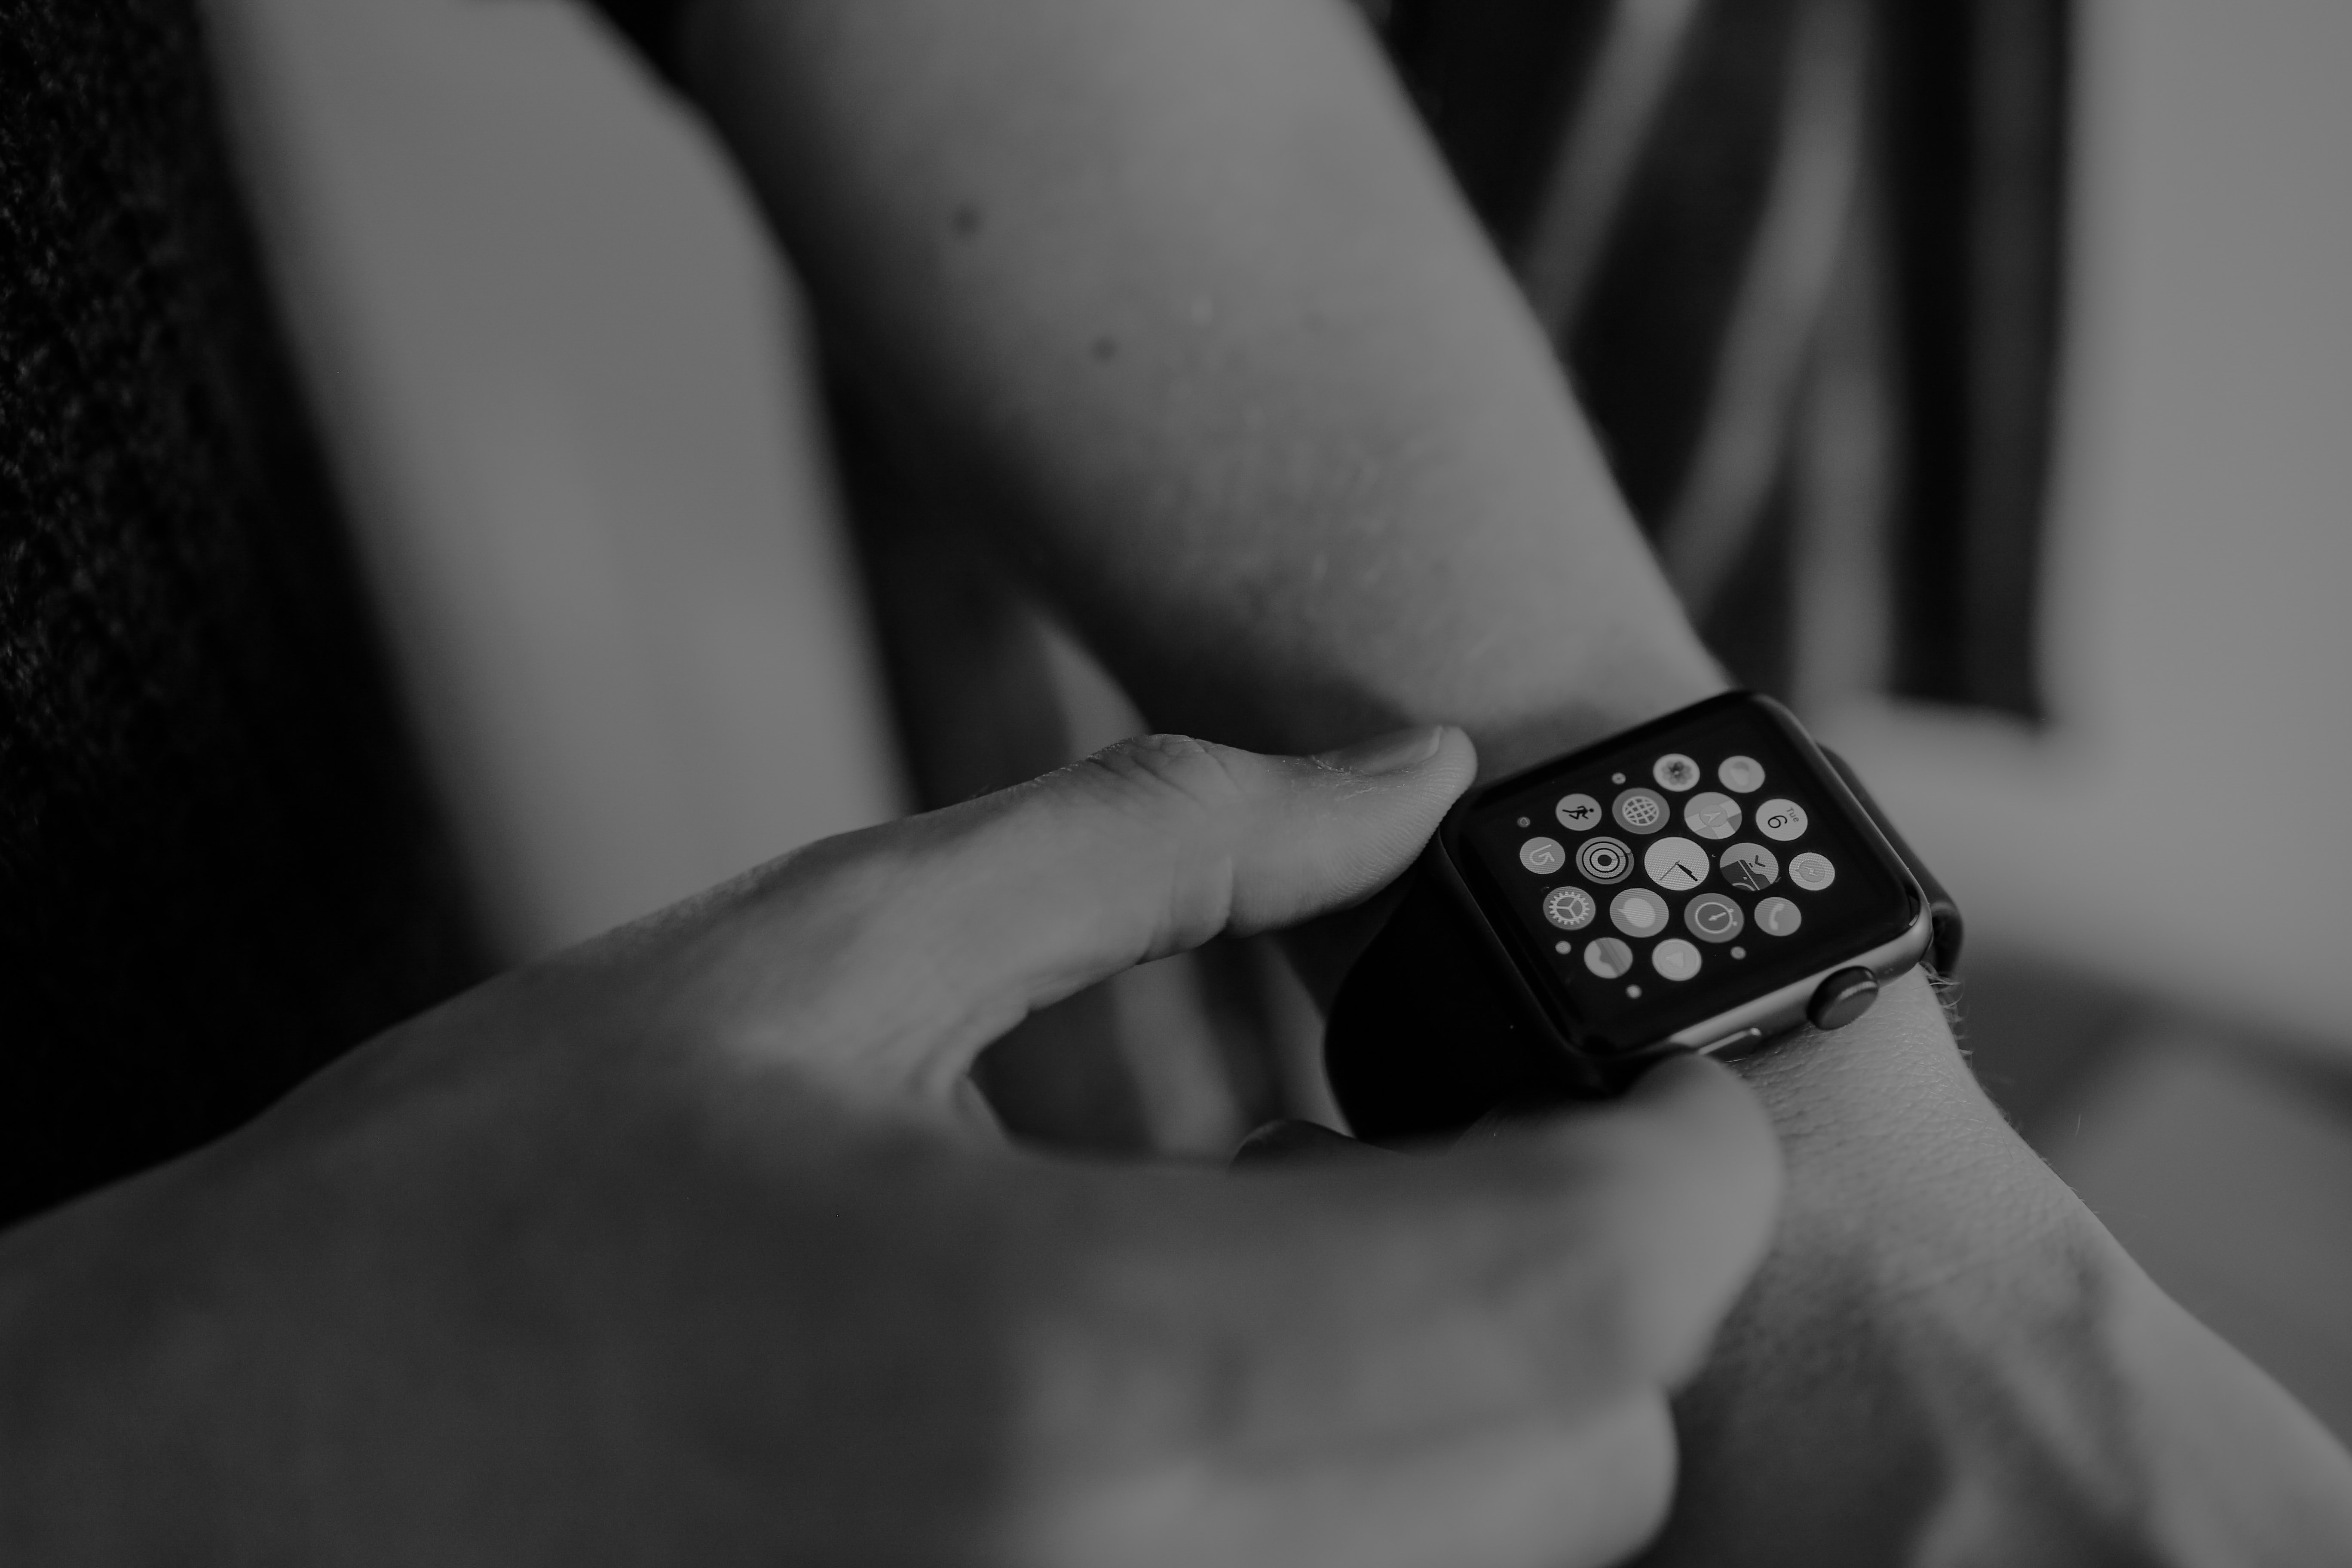 Black and white photo of a person checking their Apple Watch